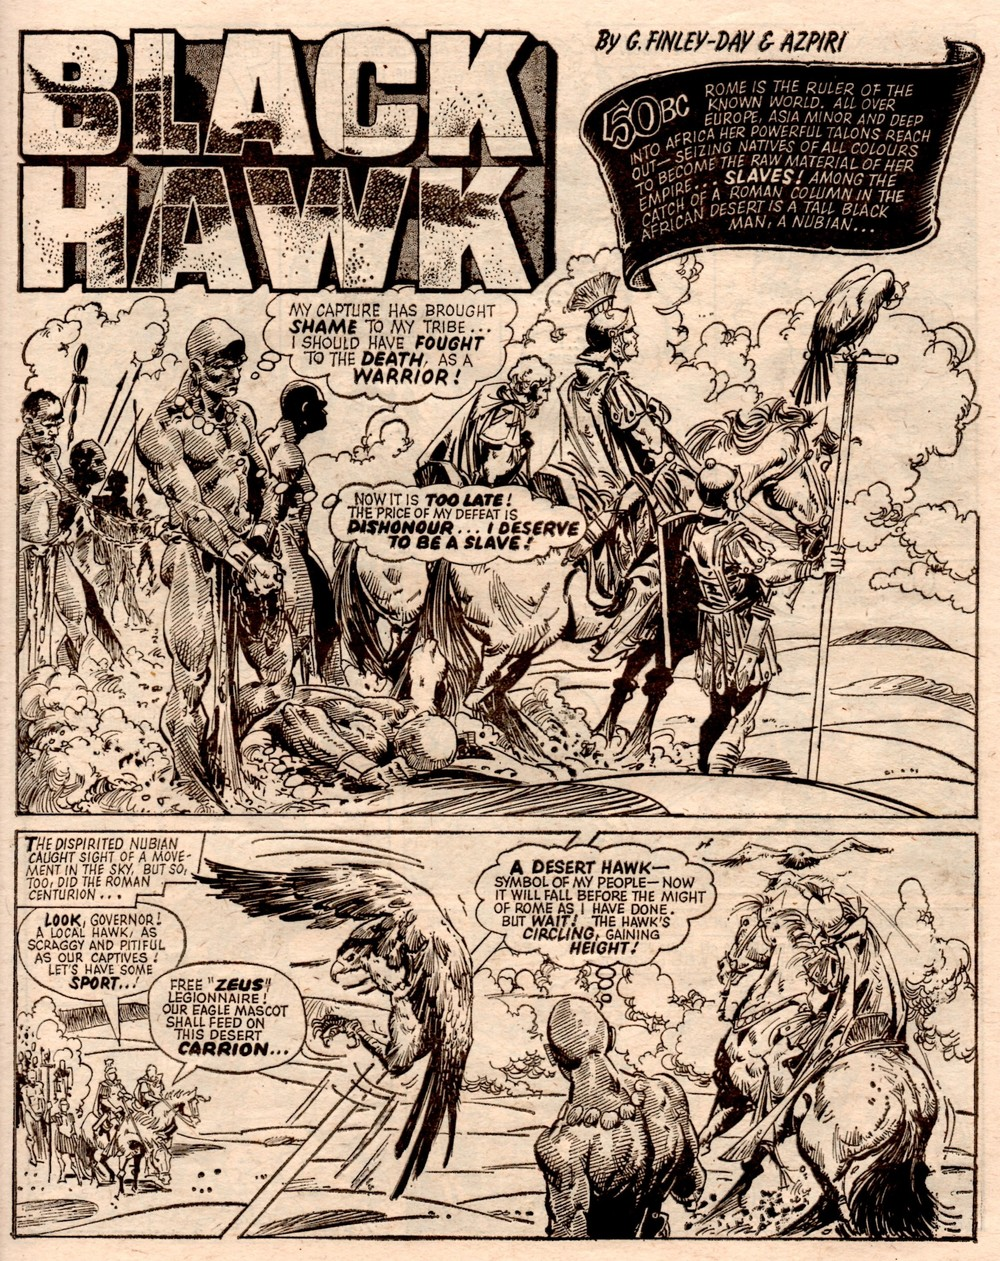 Black Hawk: Gerry Finley-Day (writer), Alfonso Azpiri (artist)